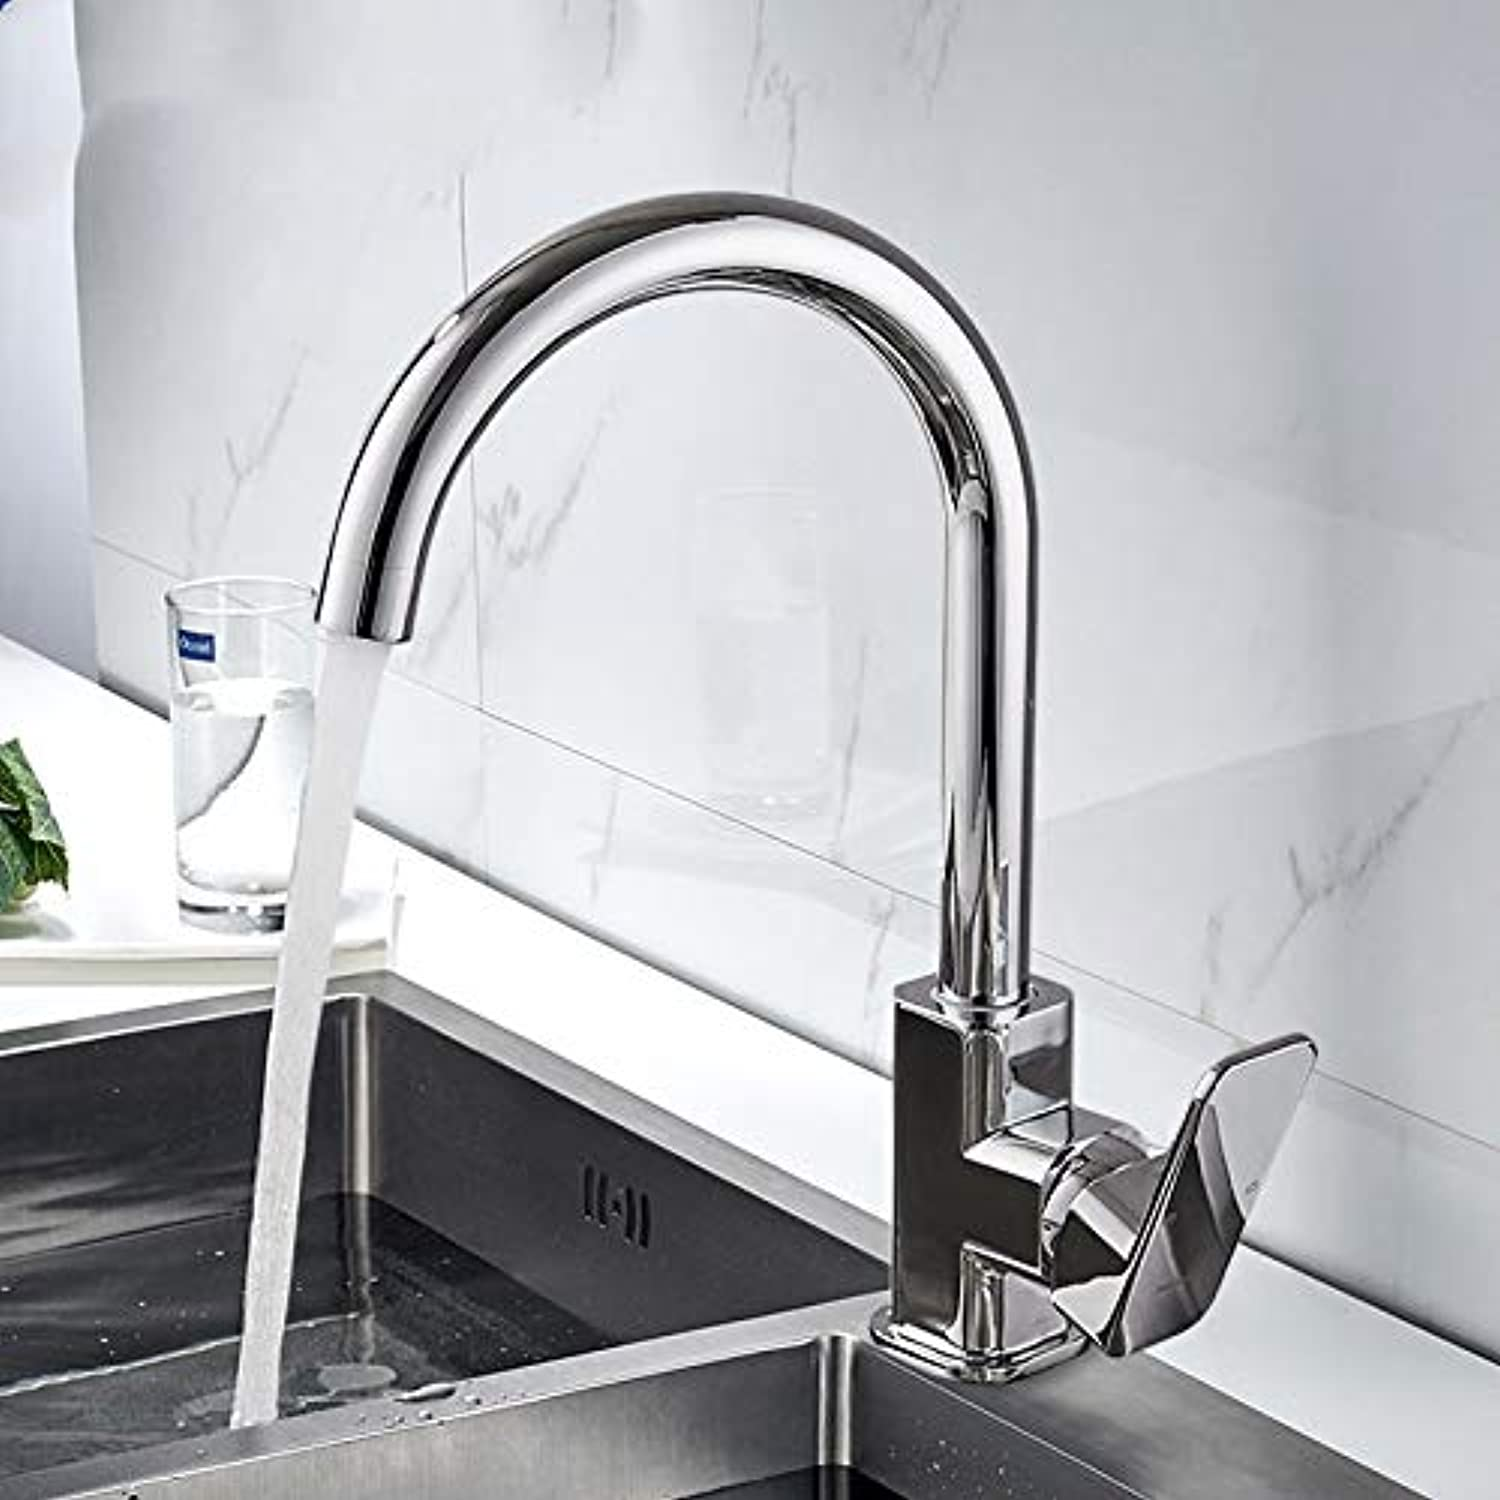 Kitchen Faucet 360 Degree redating Ruler Shape Curved Outlet Pipe Faucet Water Heating Basin Hardware Brass Sink Faucet